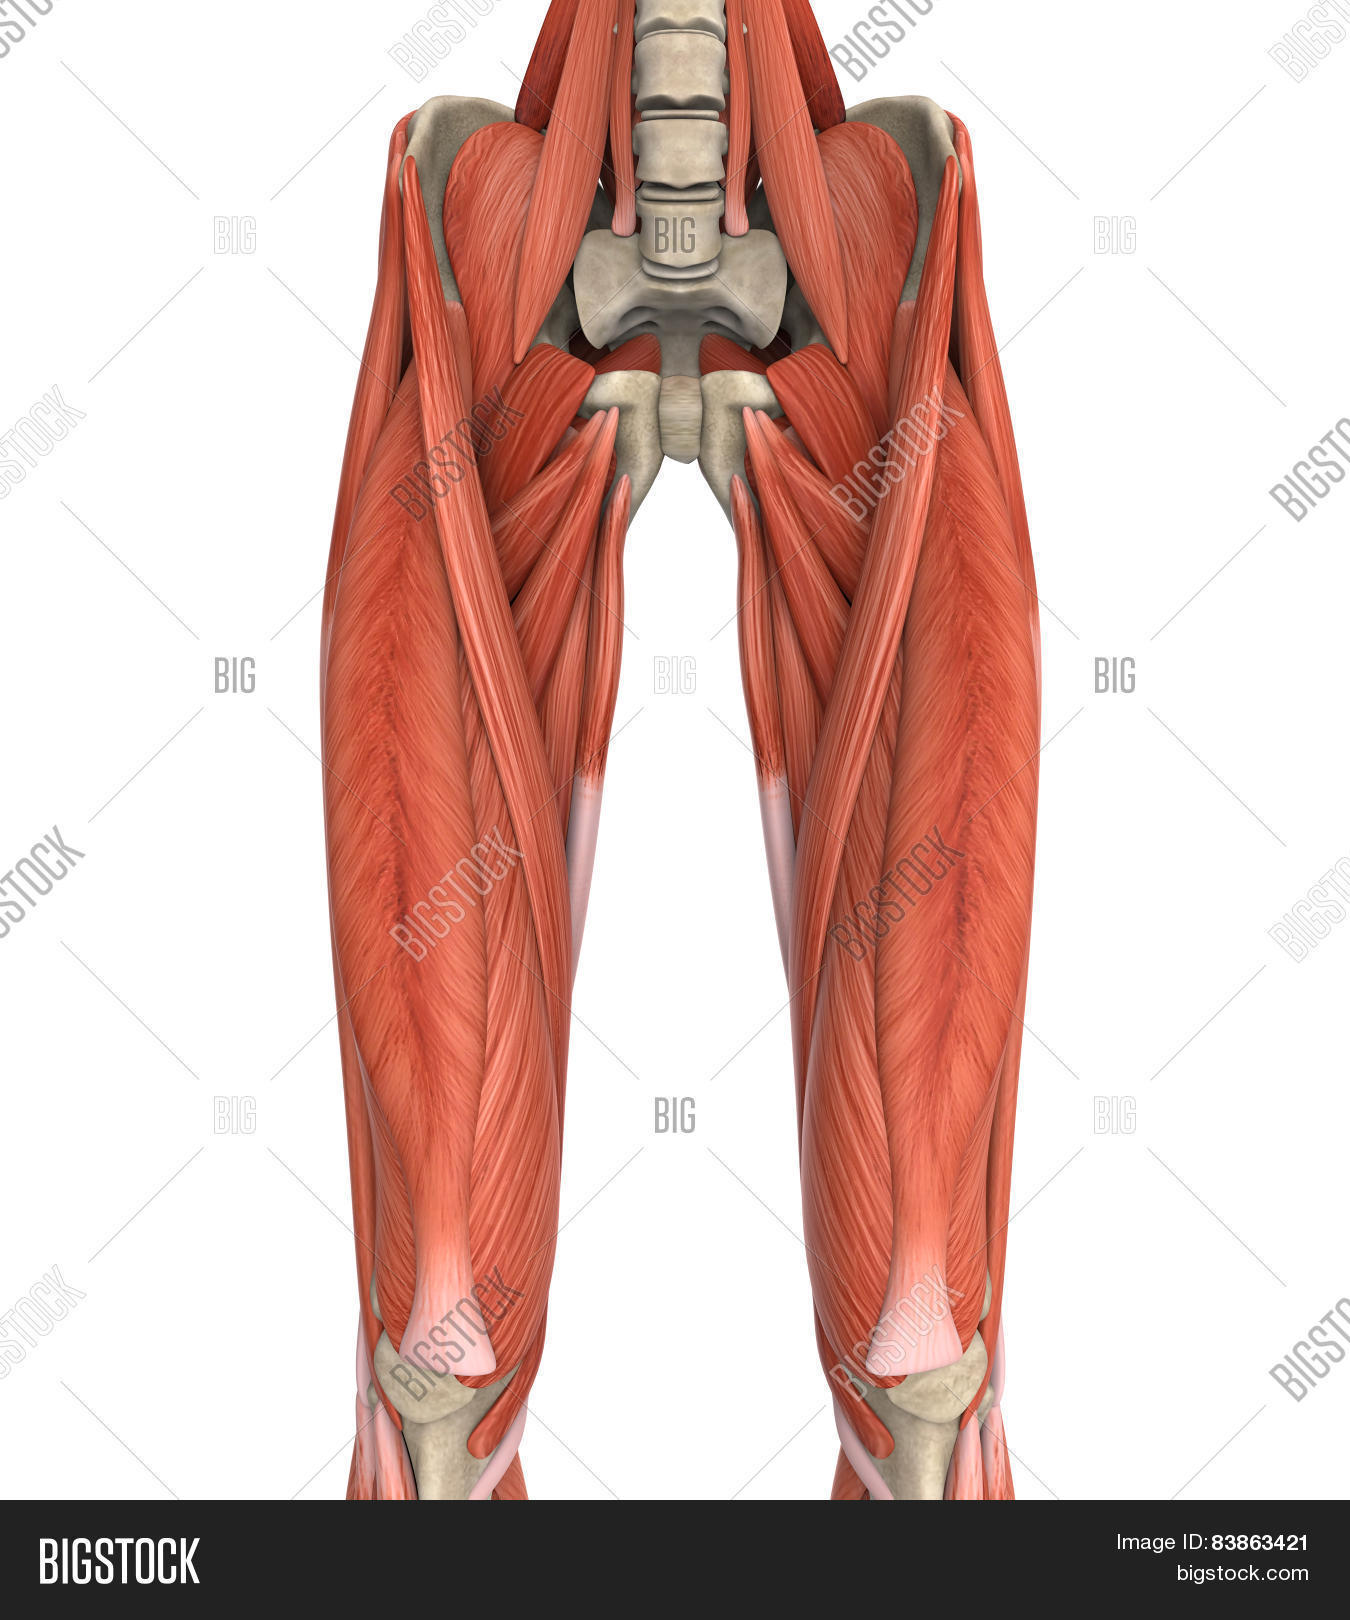 Upper Legs Muscles Image Photo Free Trial Bigstock